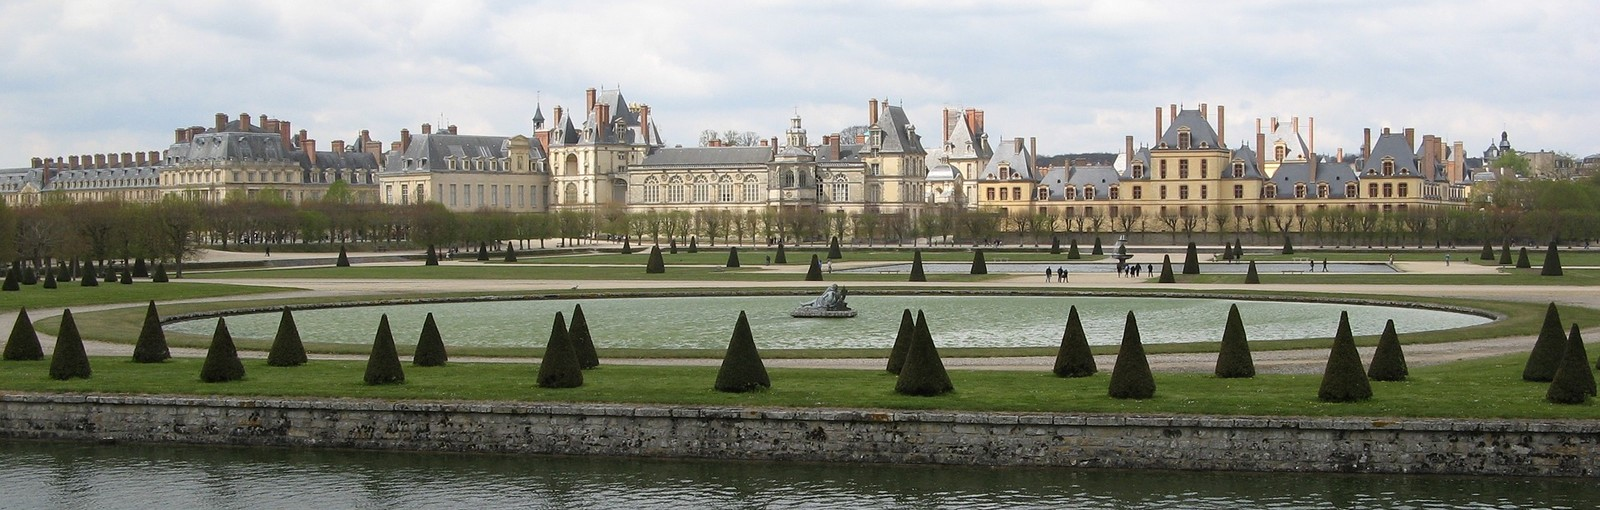 Tours Fontainebleau and Vaux-le-Vicomte - Full days - Day tours from Paris